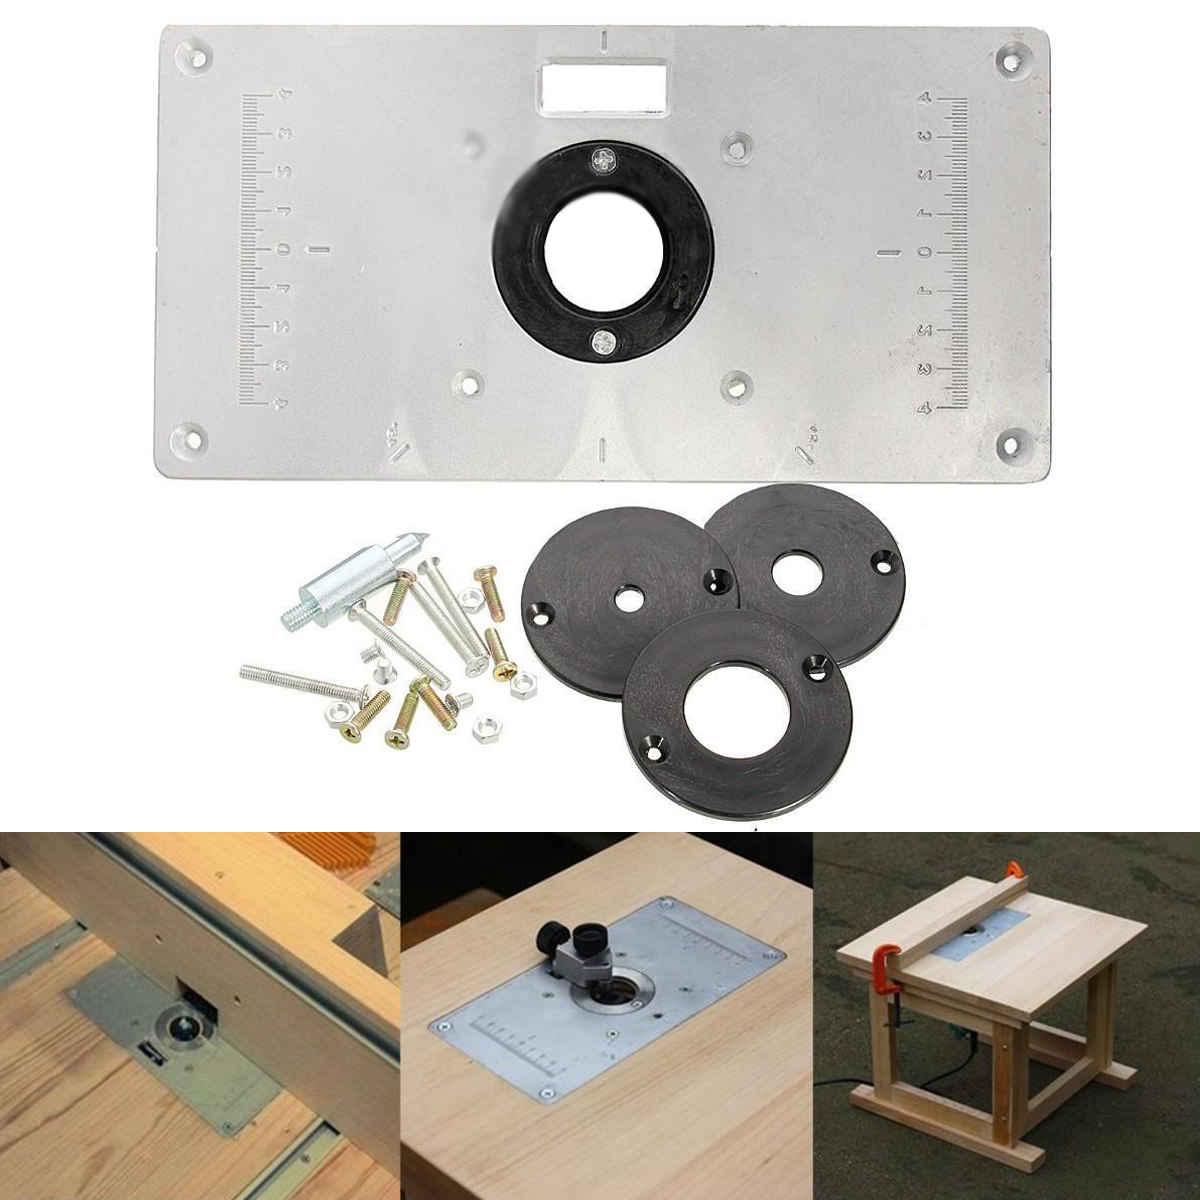 Diy router table insert plate - Online Shop Universal Aluminum Metal Router Table Insert Plate With 4pcs Insert Rings For Diy Woodworking Tools Mayitr Aliexpress Mobile